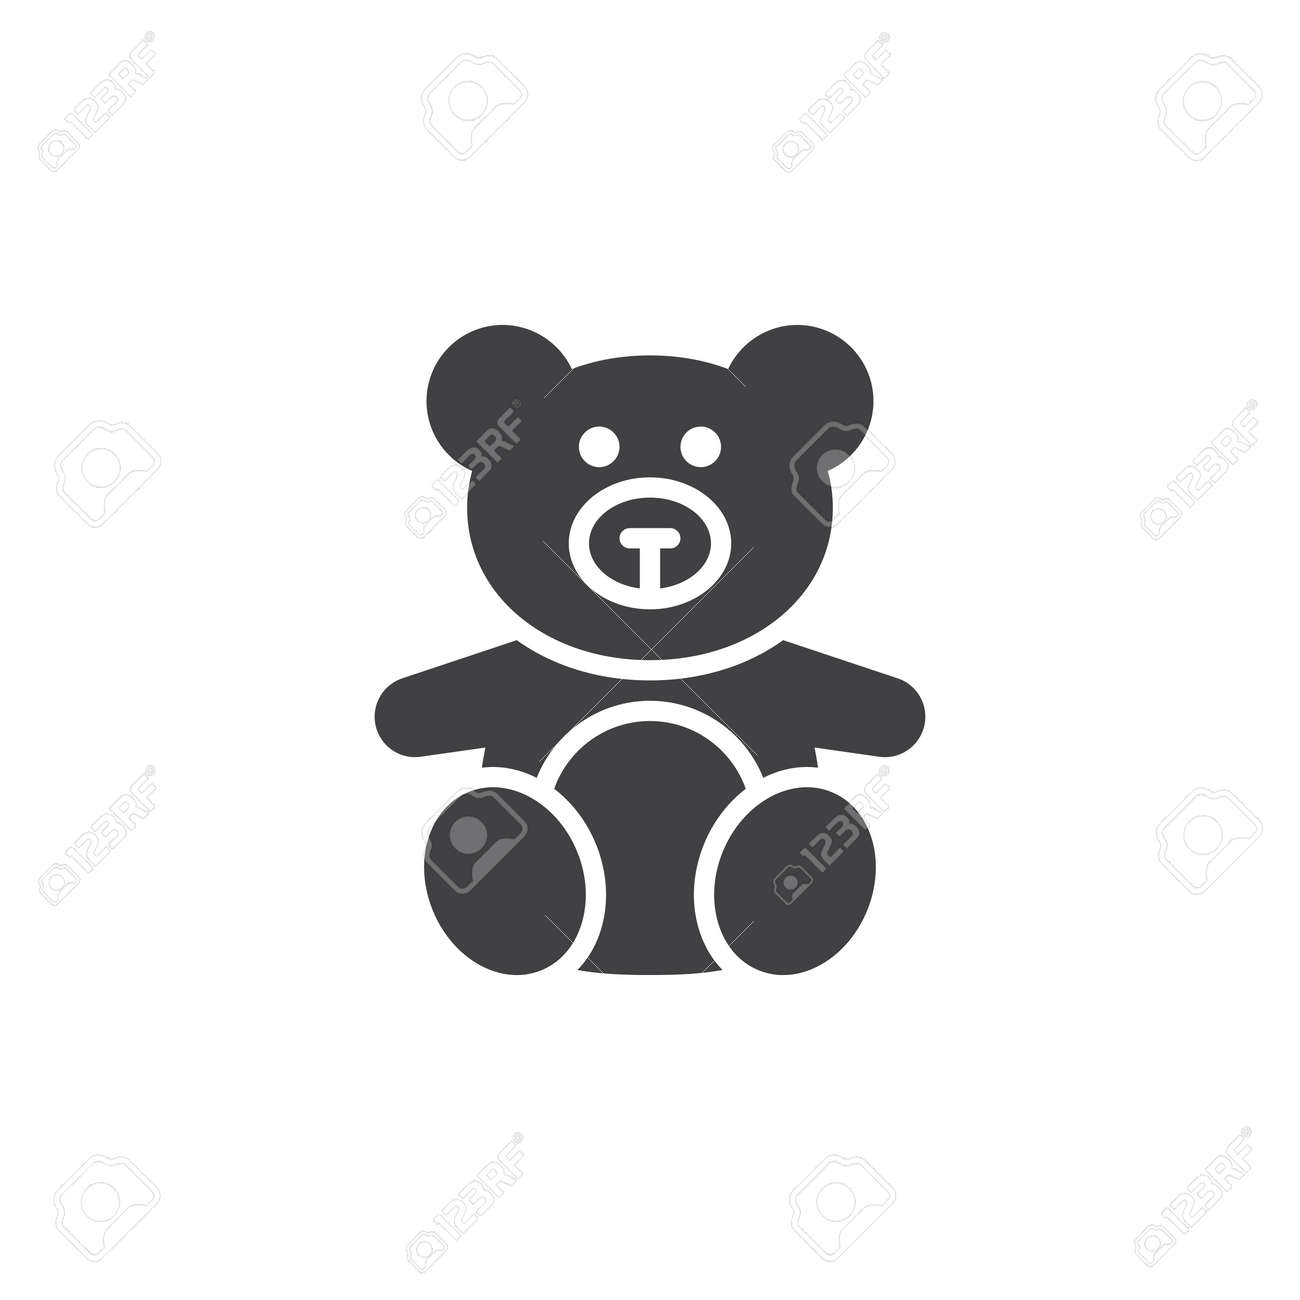 soft toy teddy bear icon vector filled flat sign solid pictogram royalty free cliparts vectors and stock illustration image 79302265 soft toy teddy bear icon vector filled flat sign solid pictogram